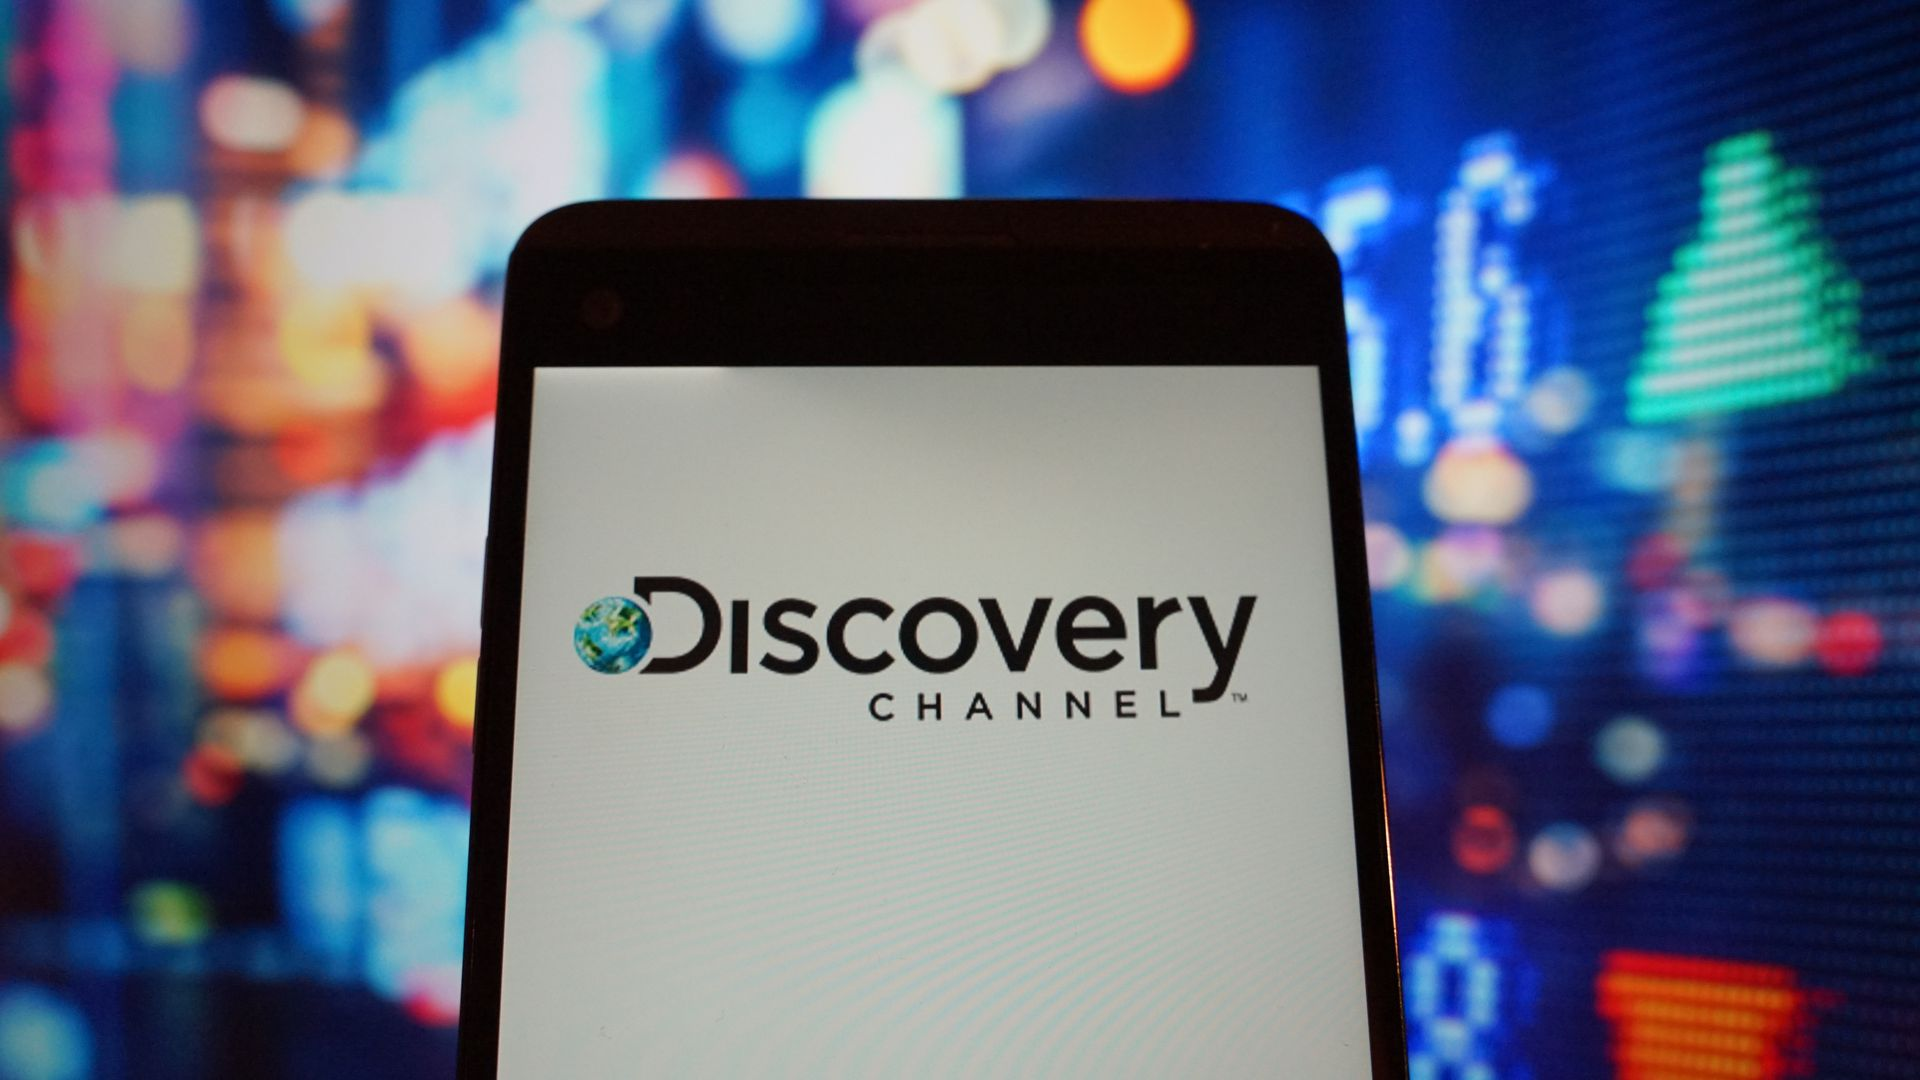 The logo of the Discovery Channel on a smartphone.